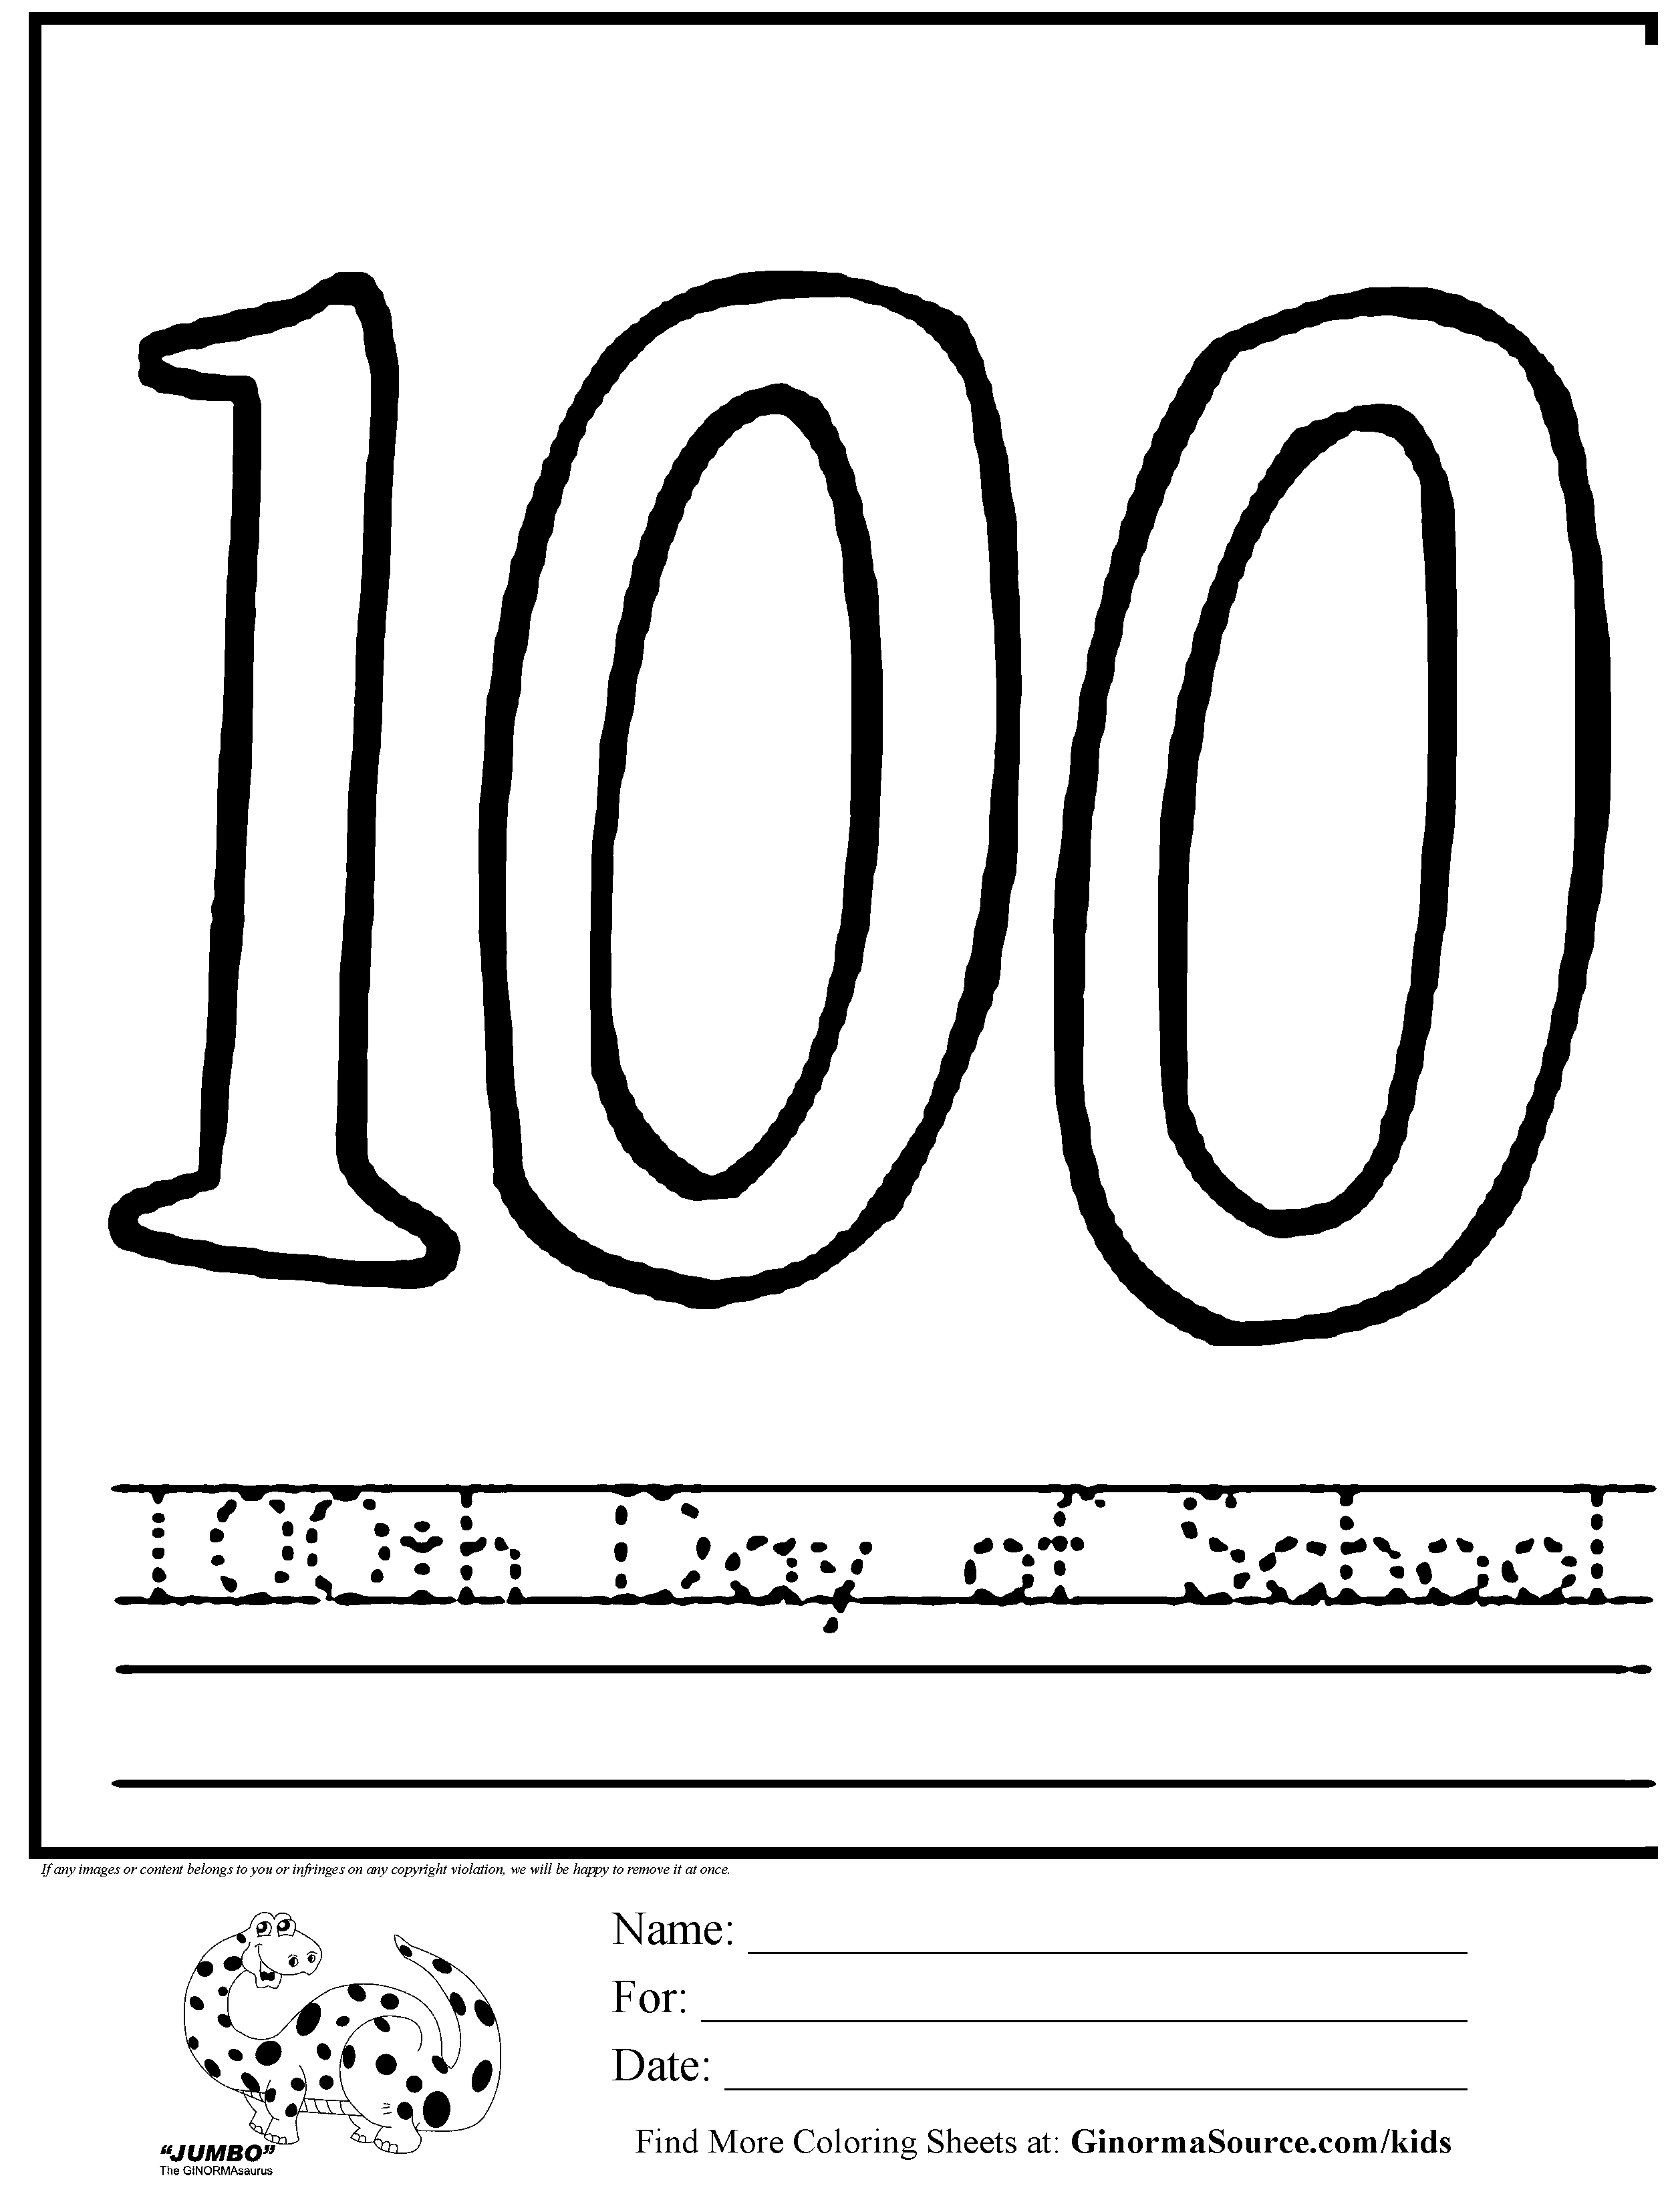 100th-day-of-school-coloring-page-0012-q1